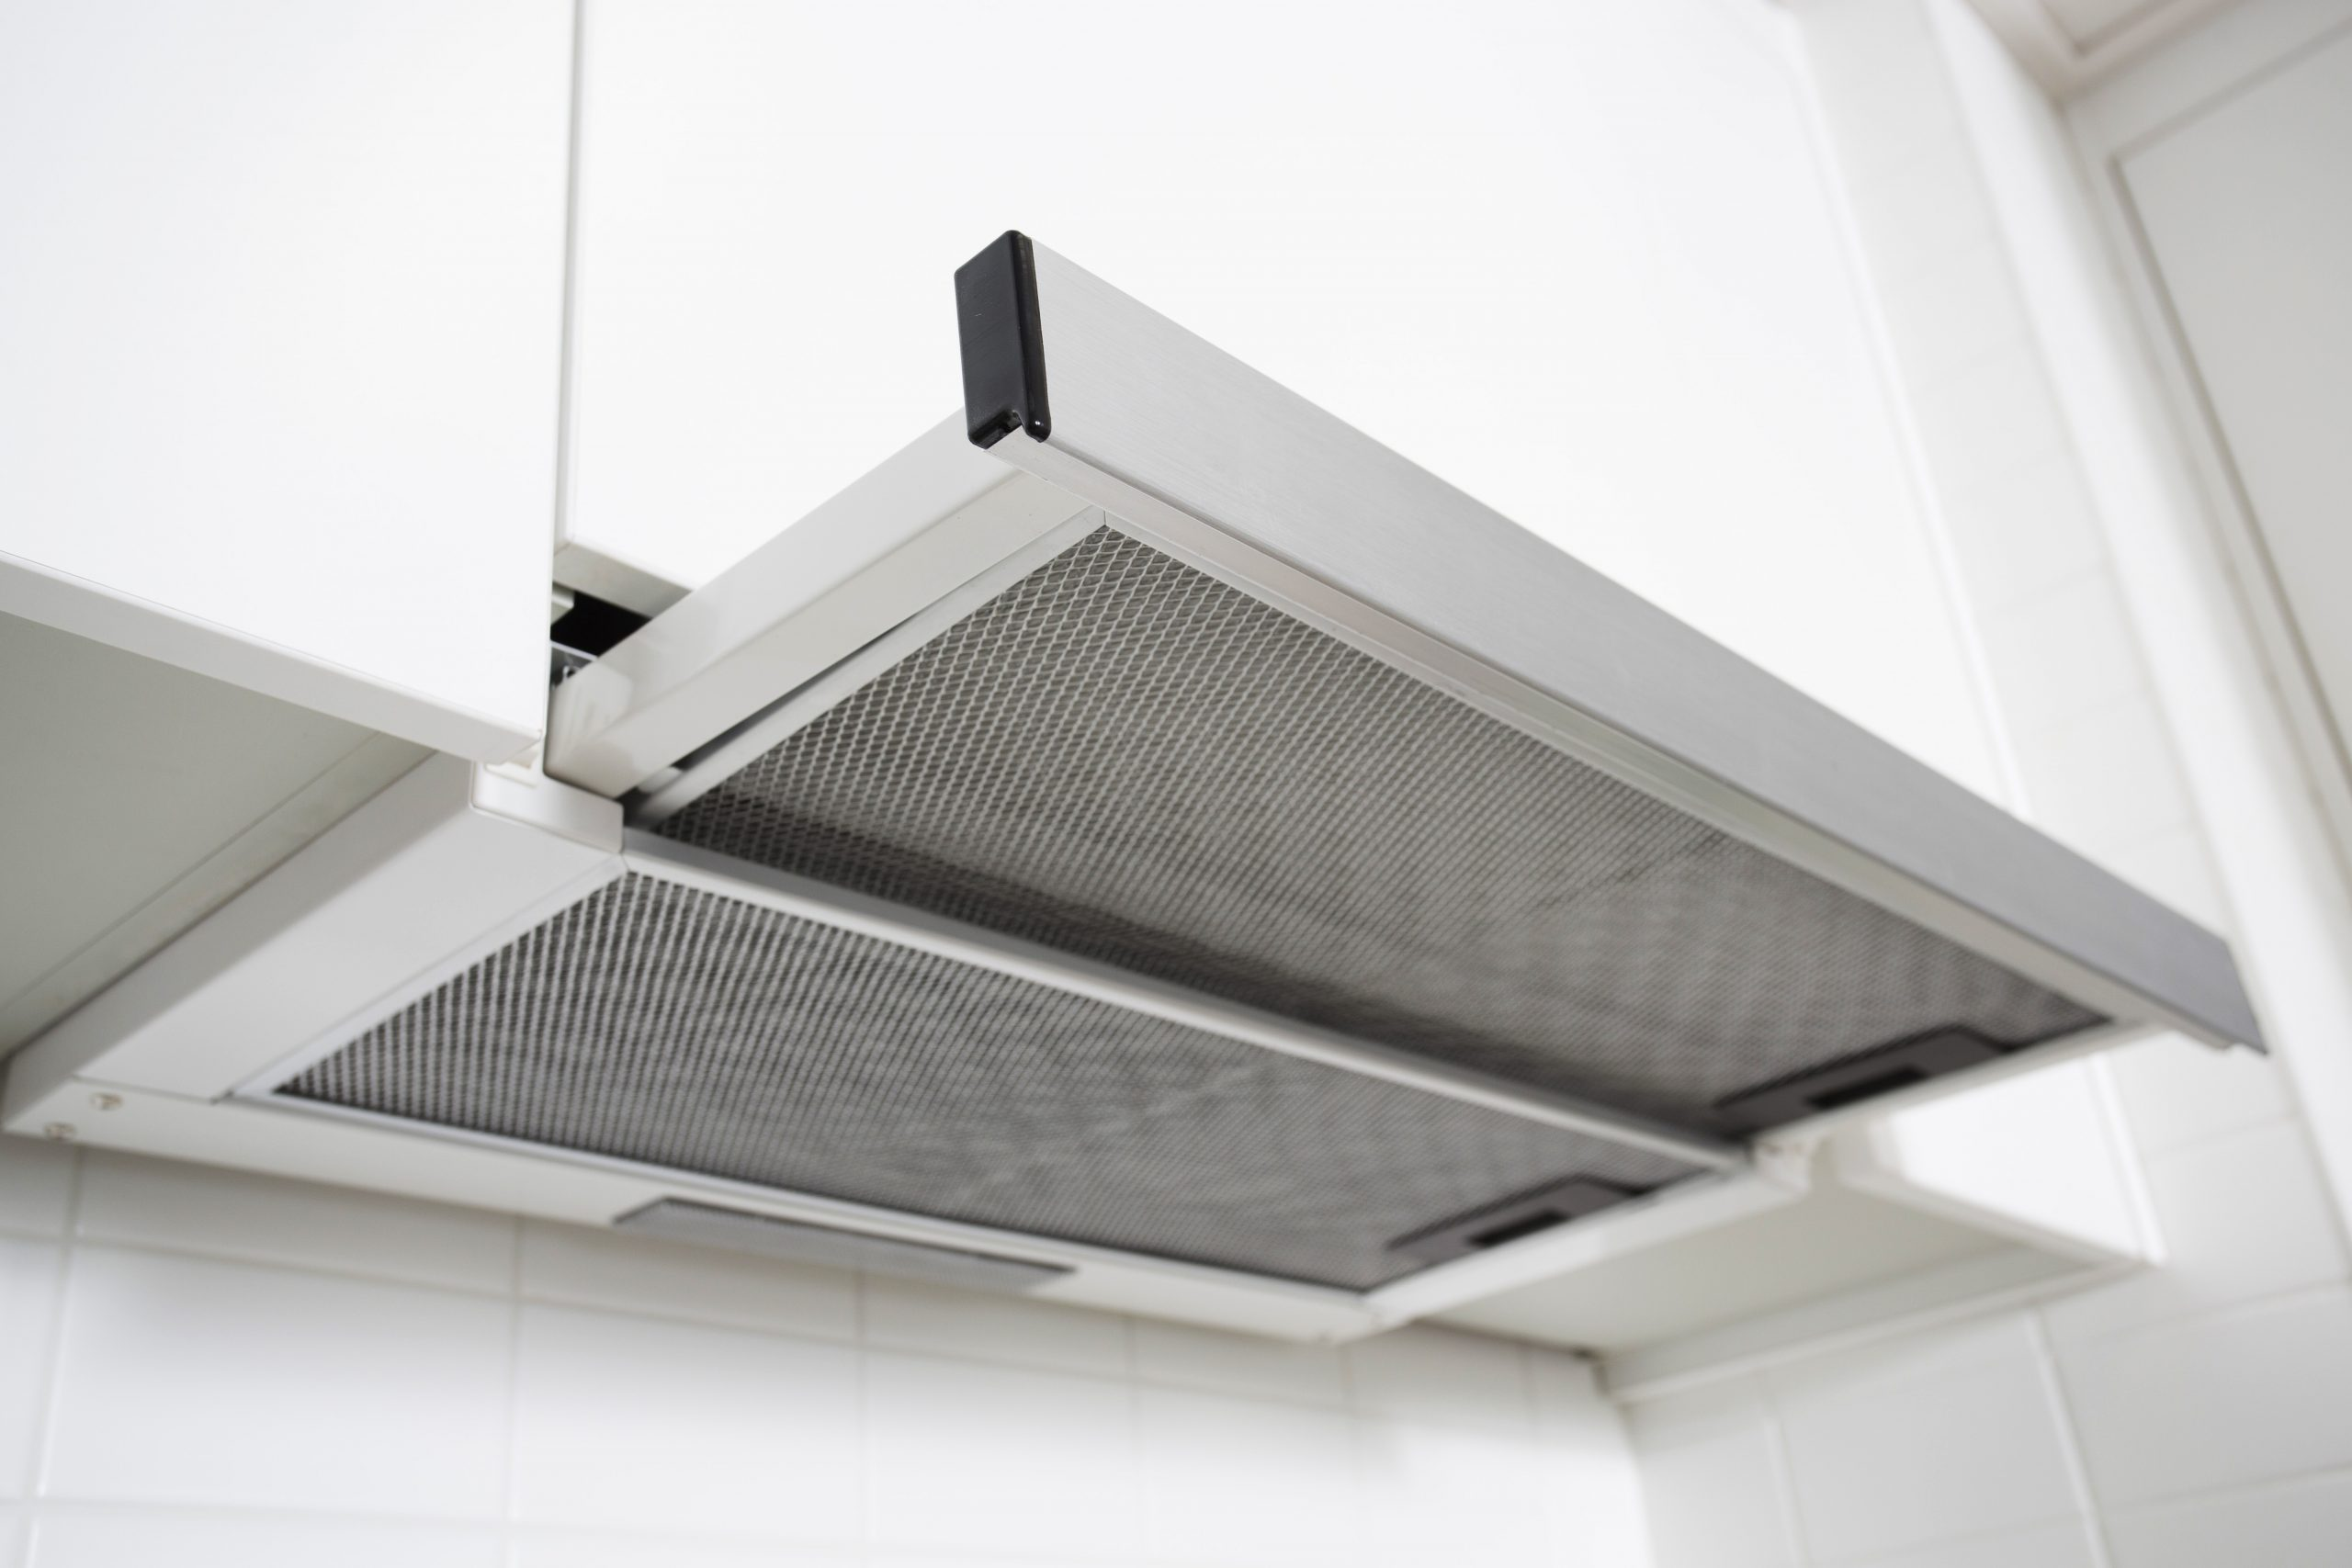 Standard Range Hood Duct Sizes Home Guides Sf Gate throughout measurements 6144 X 4096